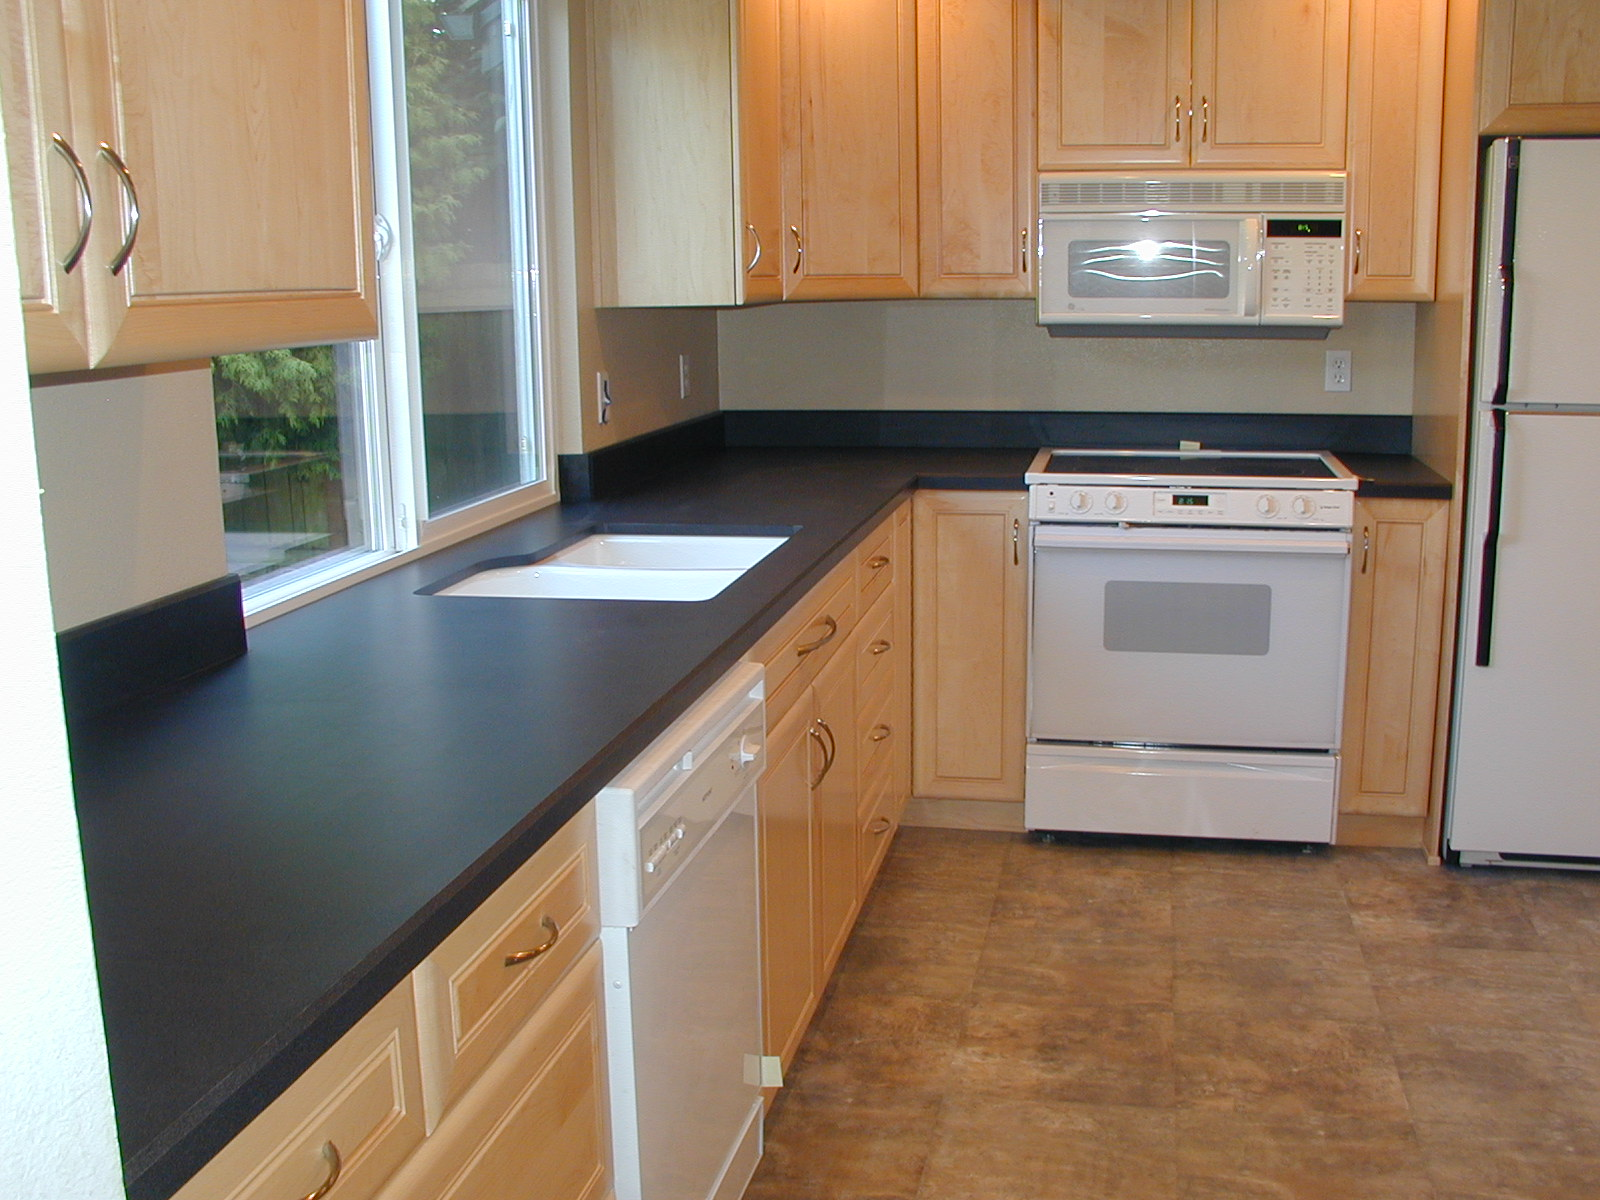 Laminate Finished Countertop In Black A Pure White Double Sinks Kitchen Electric Liances Wood